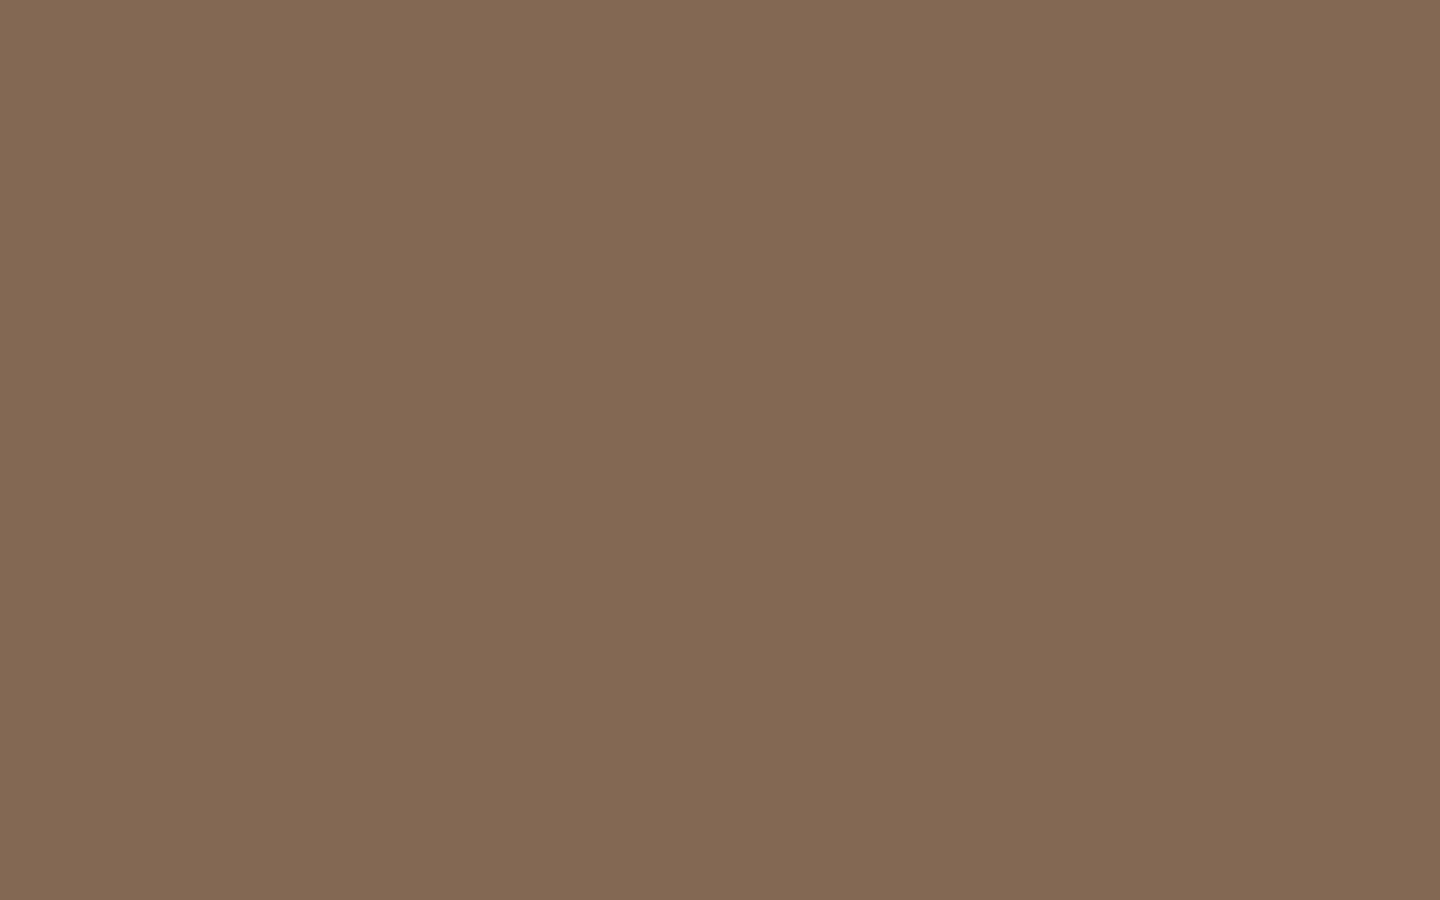 1440x900 Pastel Brown Solid Color Background